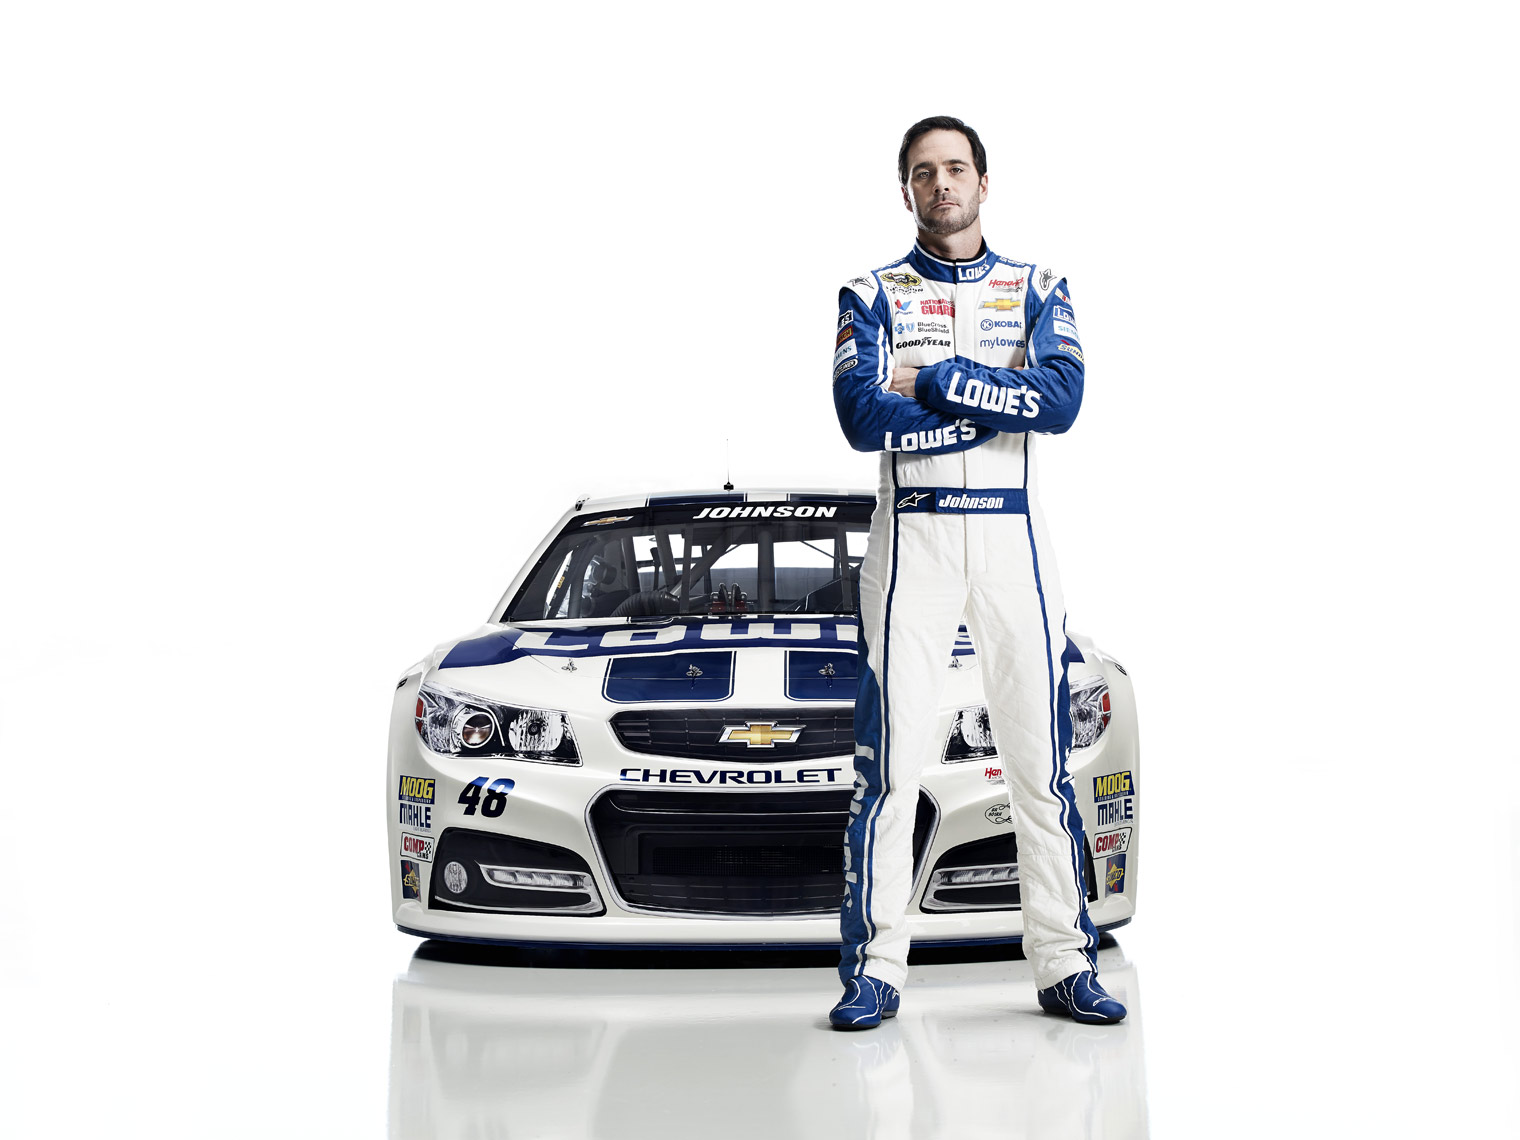 L_LowesTeamRacing2014_JimmieJohnson_ChadKnaus_LowesCarp_B_488